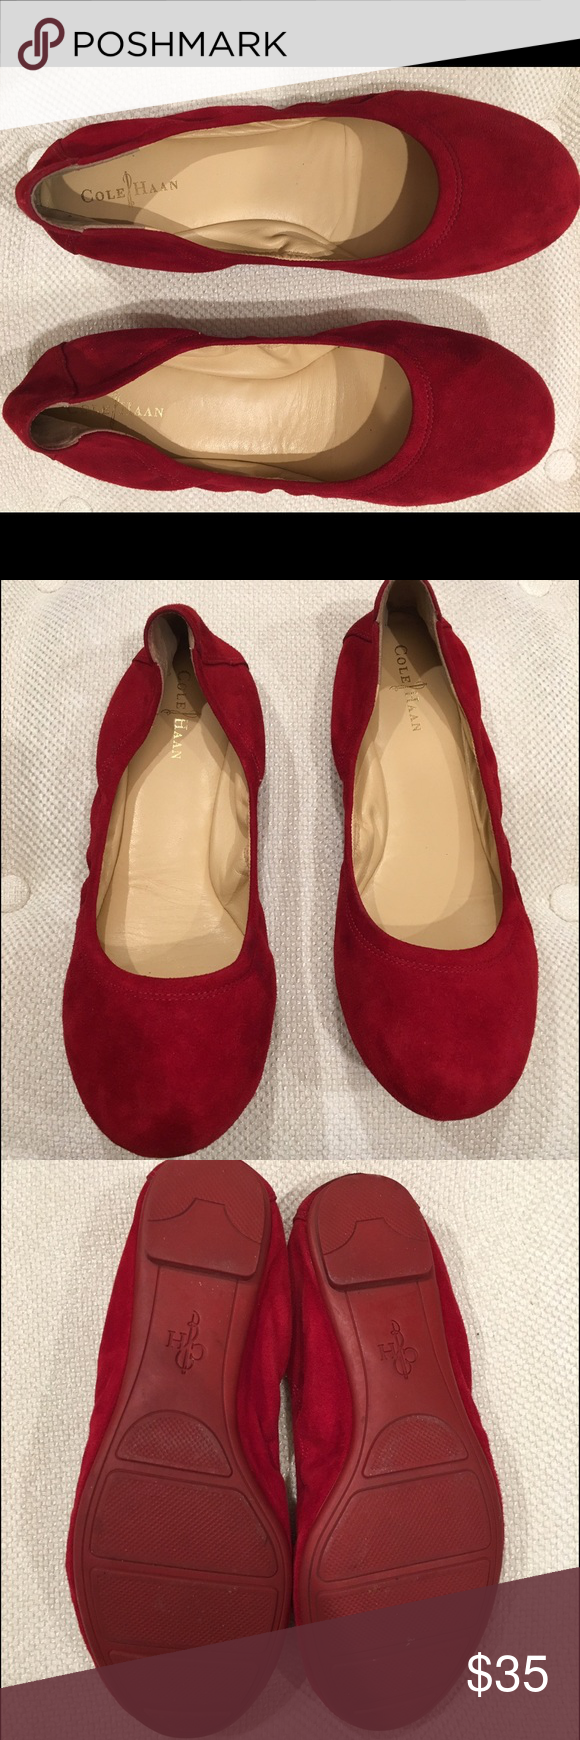 Coach red suade ballet flats Coach red suade ballet flats very gently worn once or twice. As you can see very little wear to these. Super comfortable! Coach Shoes Flats & Loafers